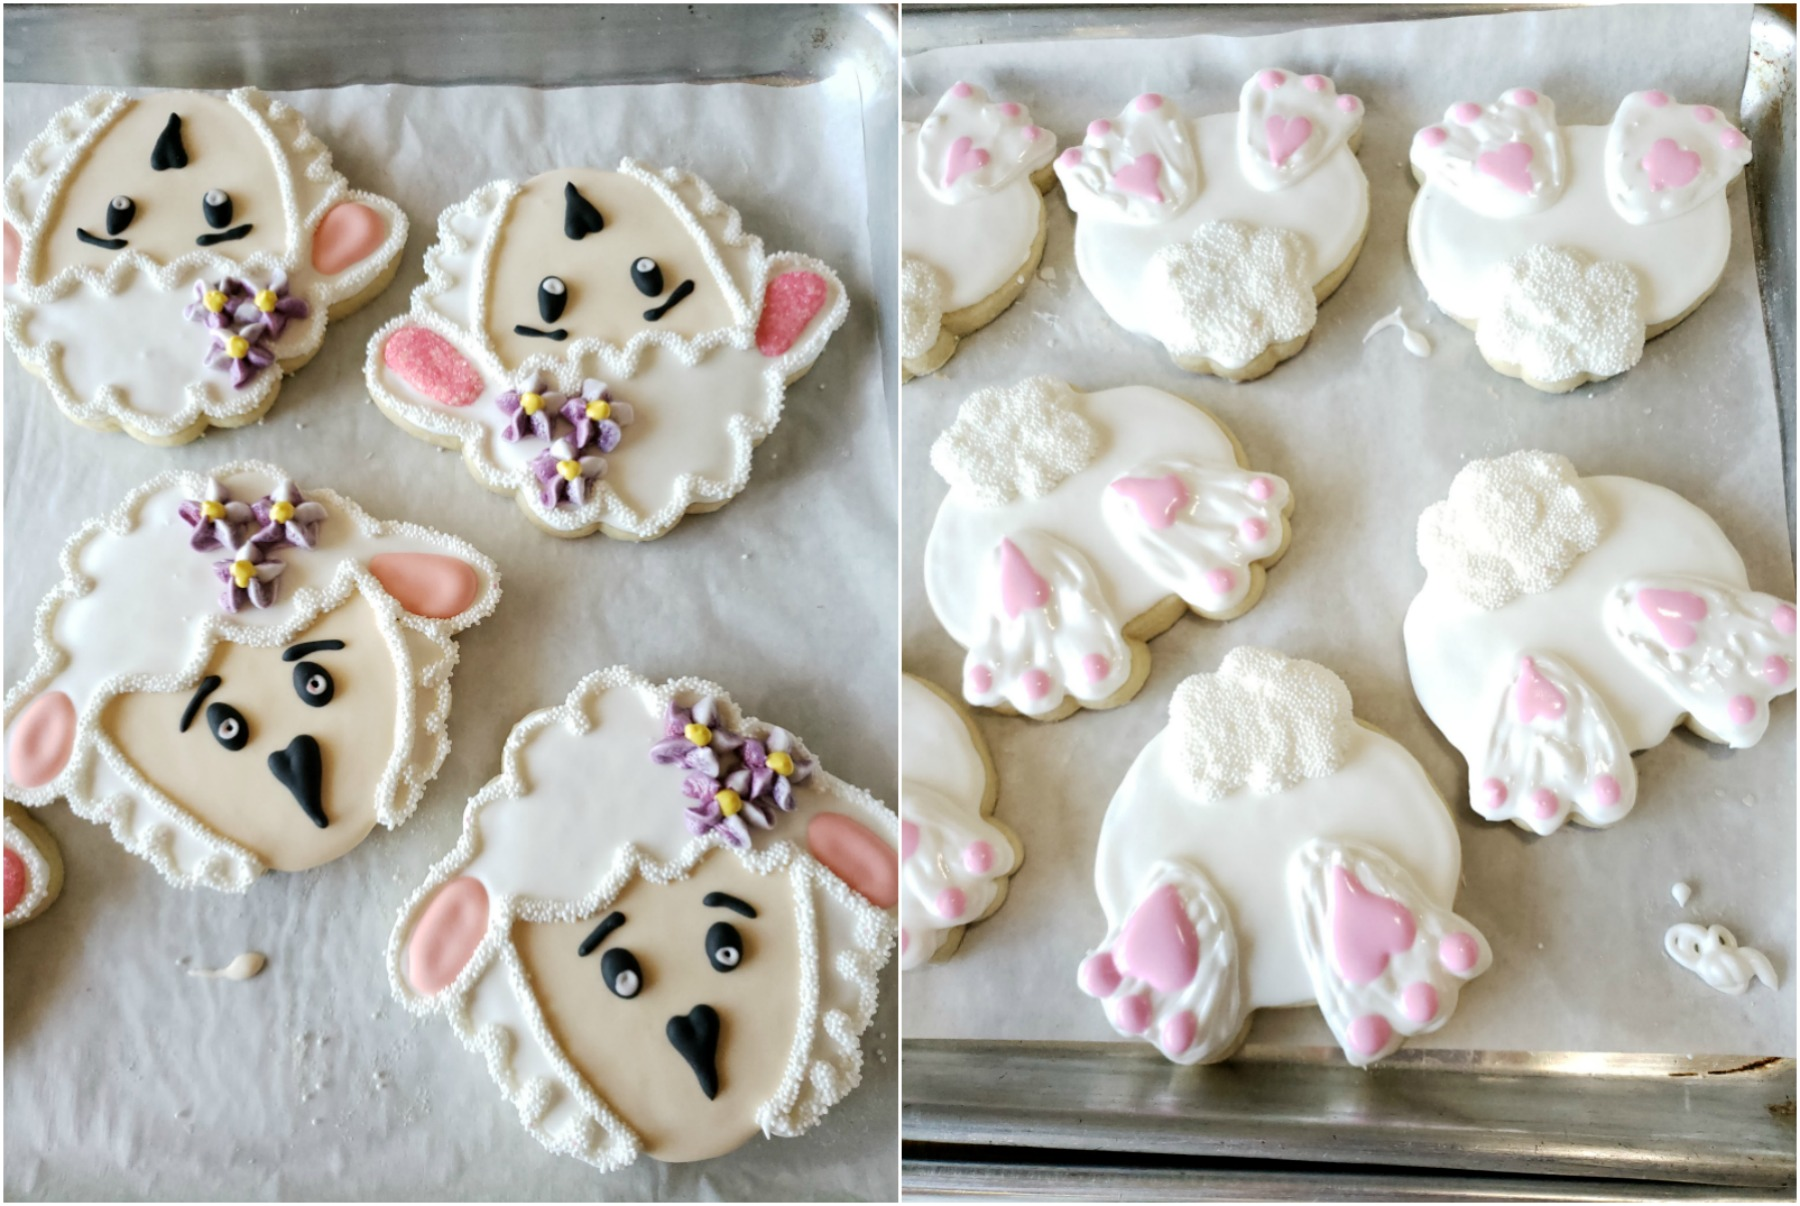 Easter decorated sugar cookies of Lamb's heads and bunny's butts.